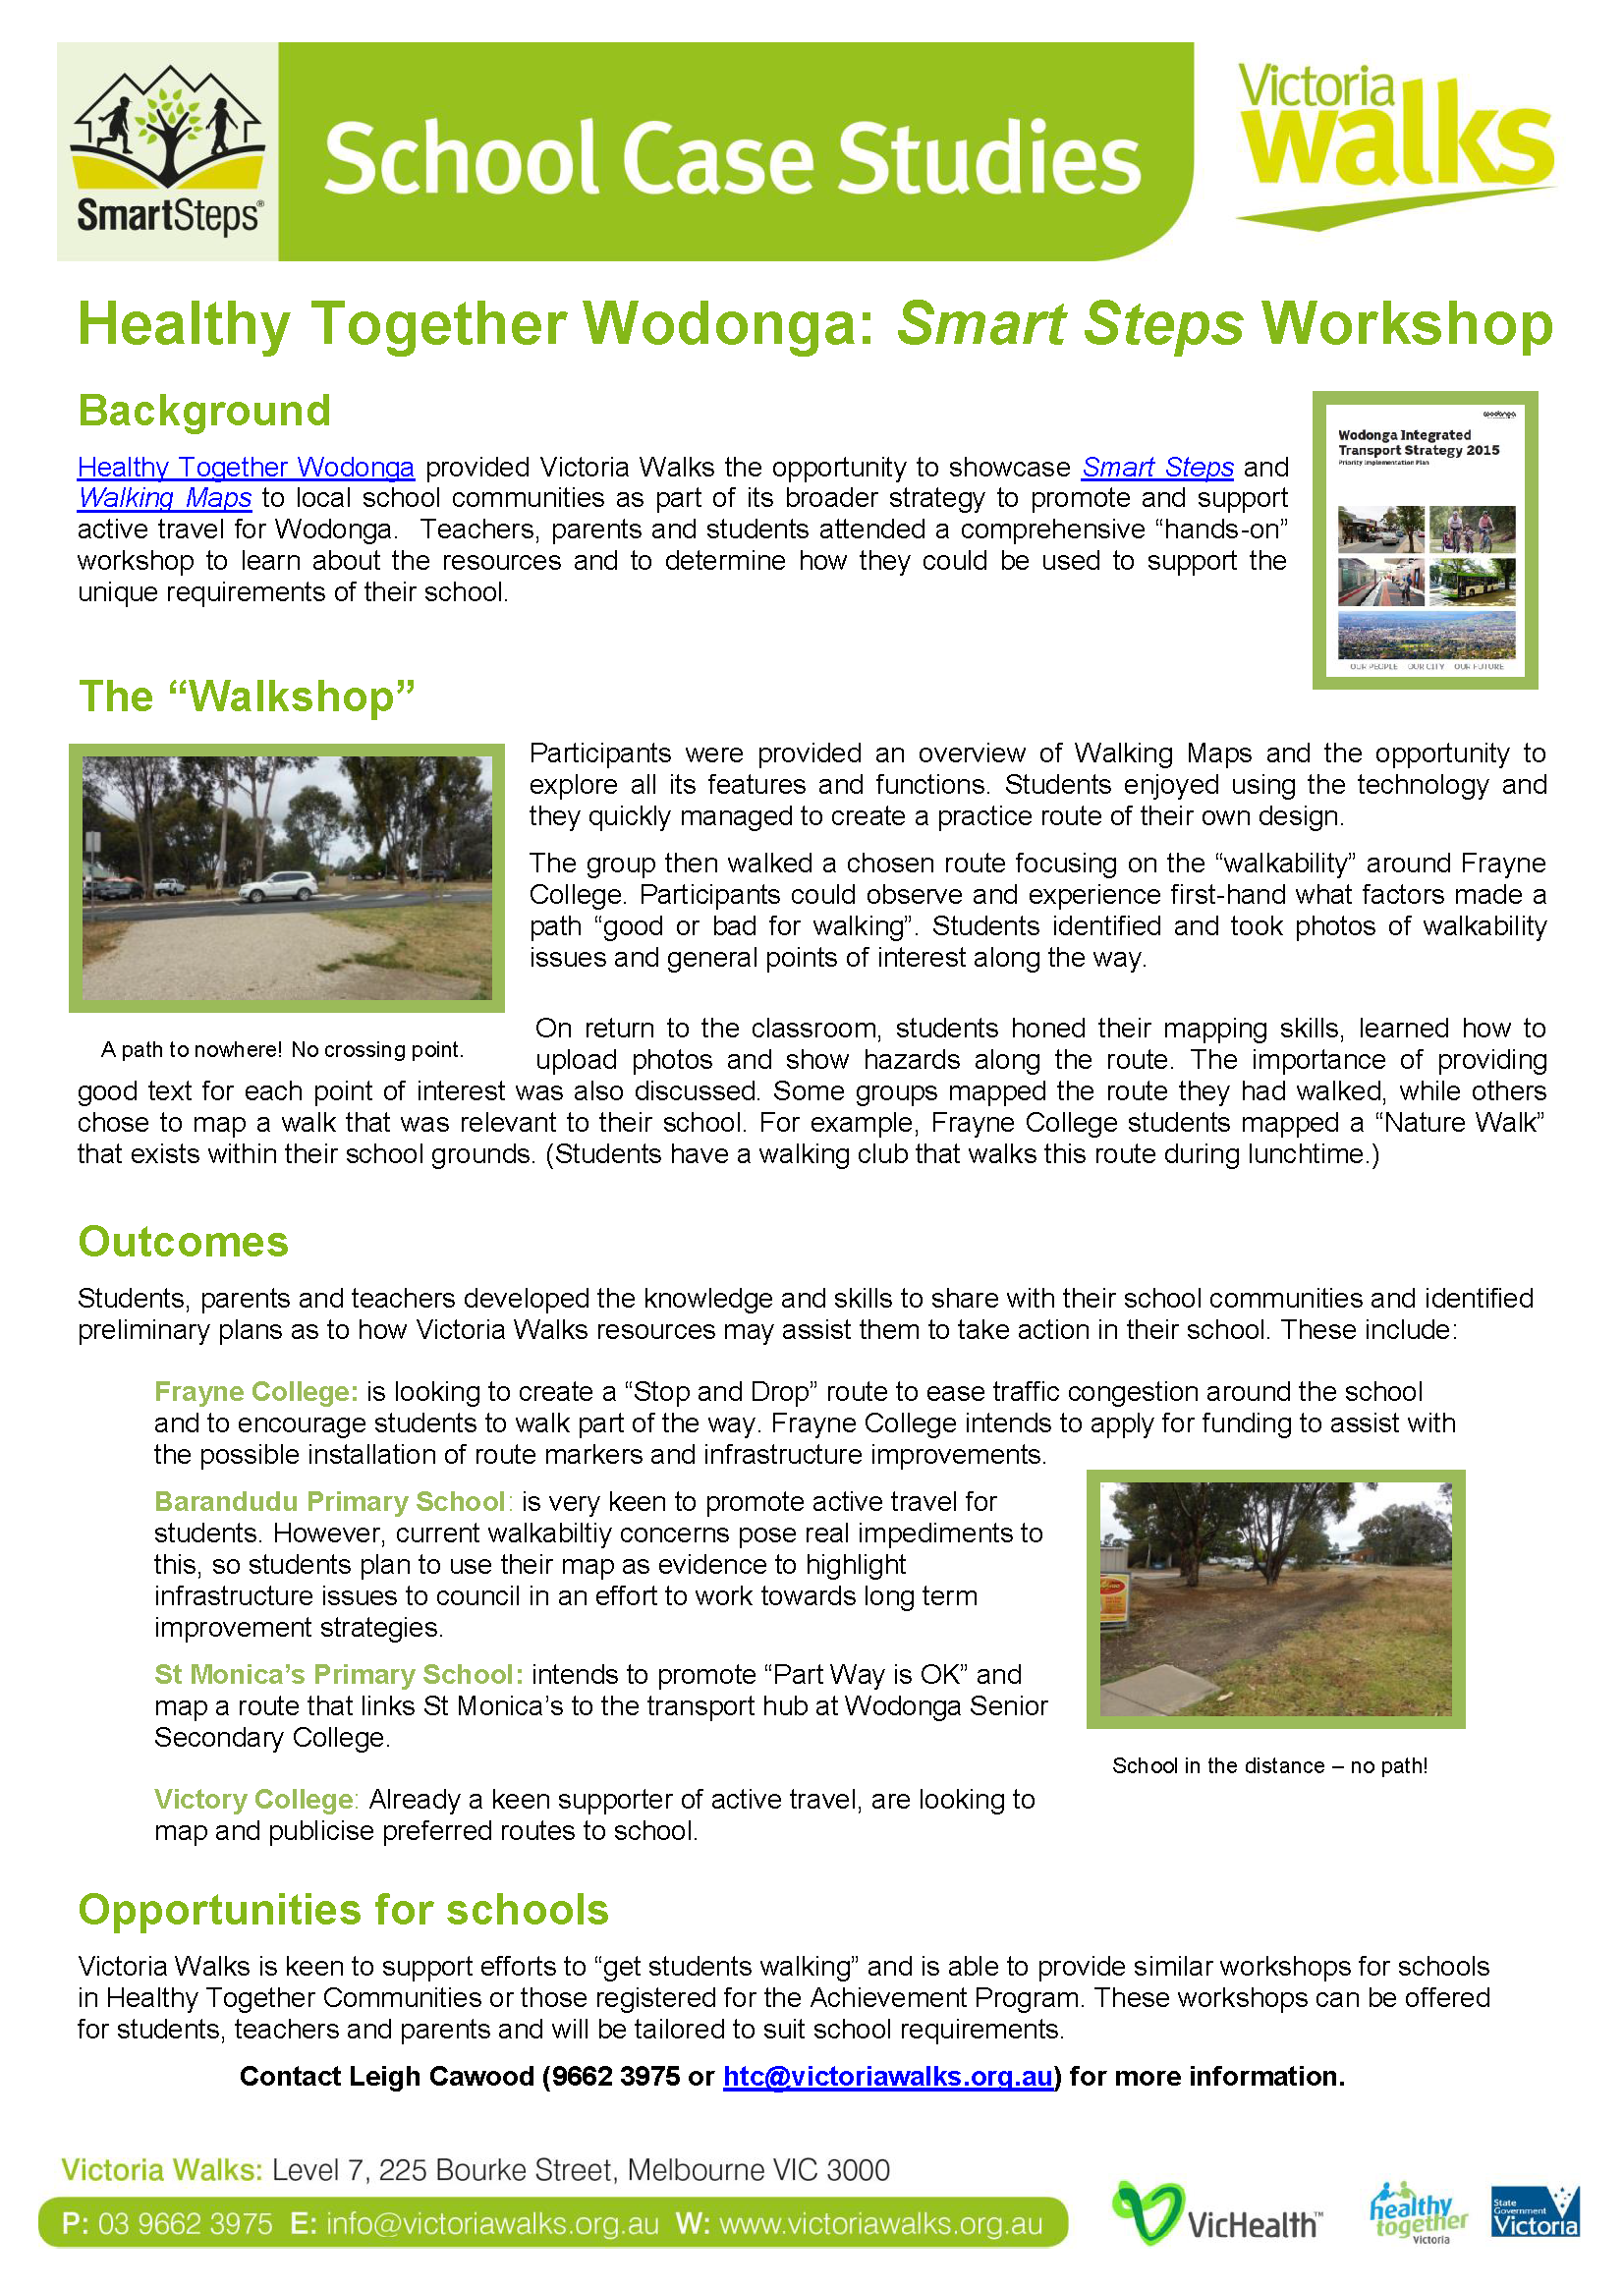 Wodonga Healthy Together Case Study